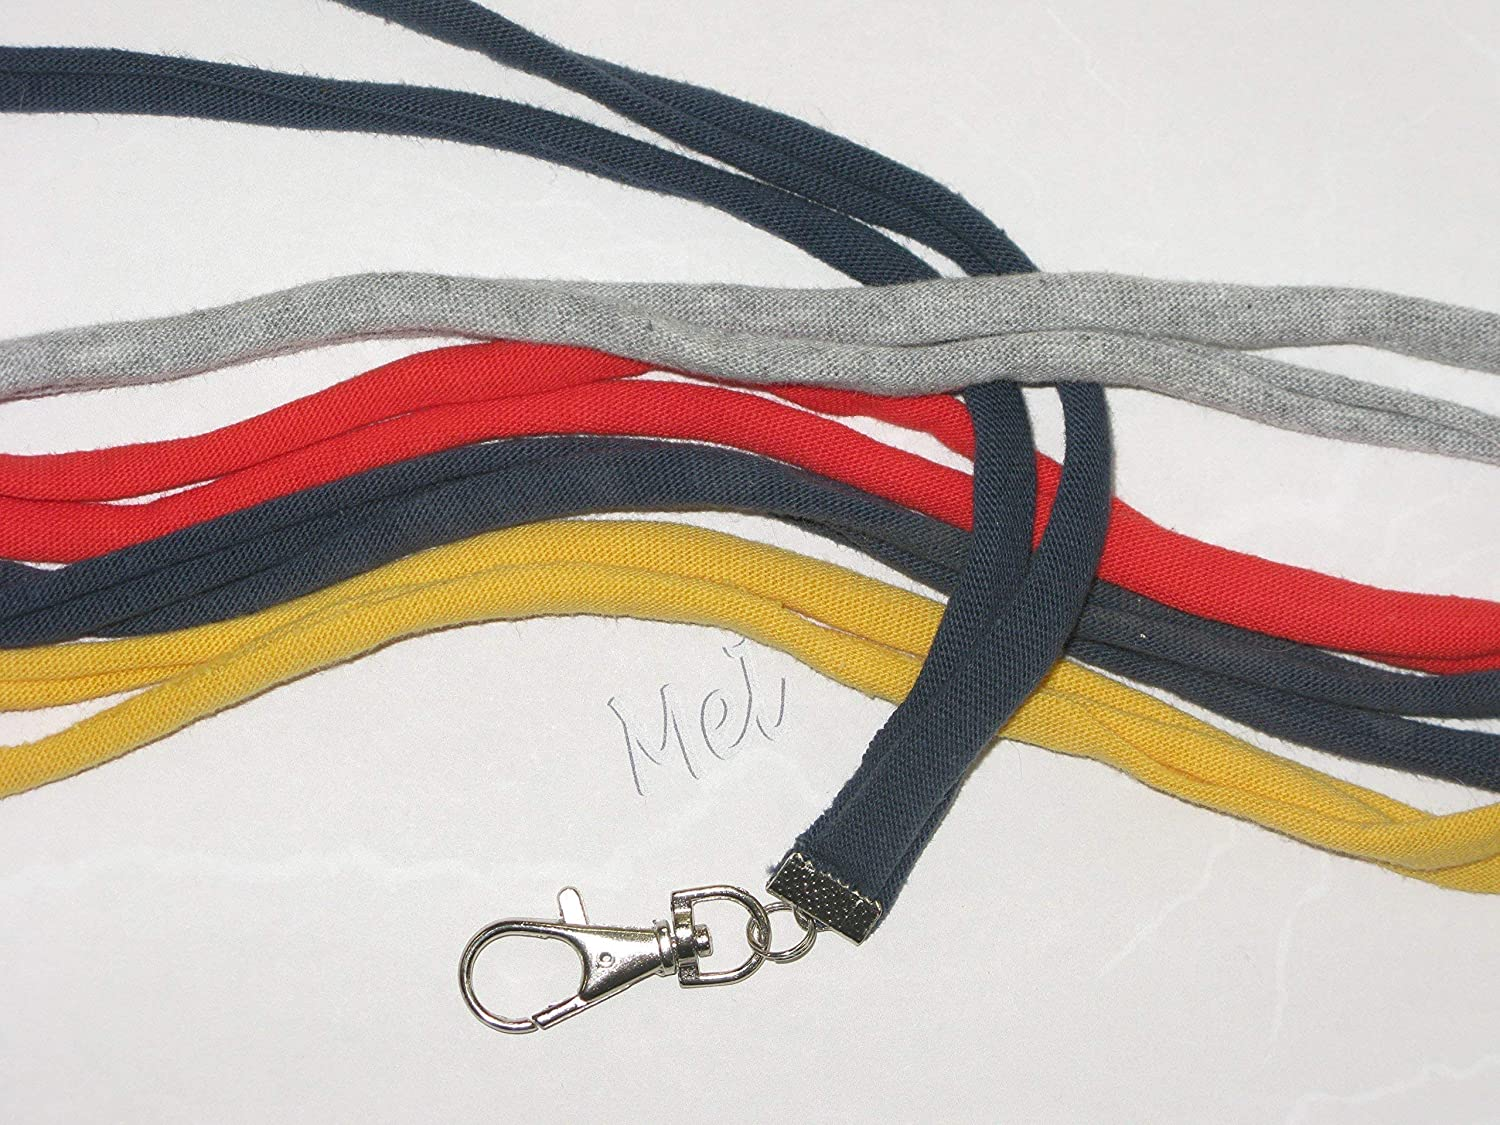 B016CIJWWU Soft and Comfy Lanyard for your ID Badge, Medic Alert, Keys, etc. 91noqZeEfRL